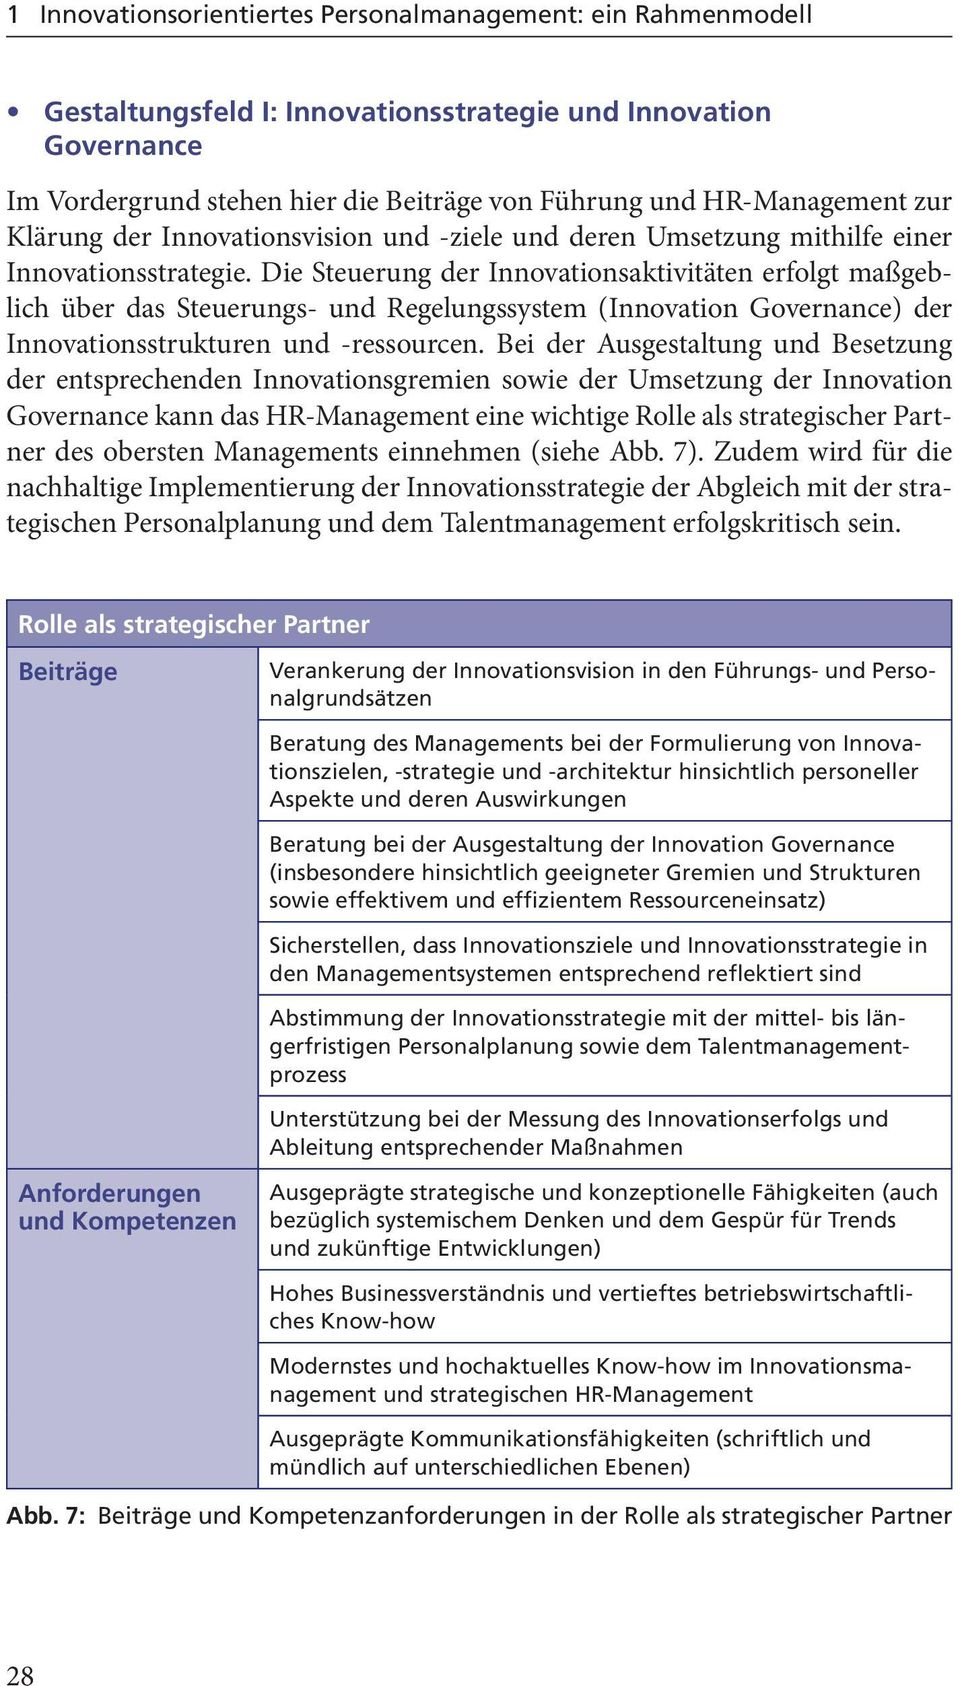 Die Steuerung der Innovationsaktivitäten erfolgt maßgeblich über das Steuerungs- und Regelungssystem (Innovation Governance) der Innovationsstrukturen und -ressourcen.